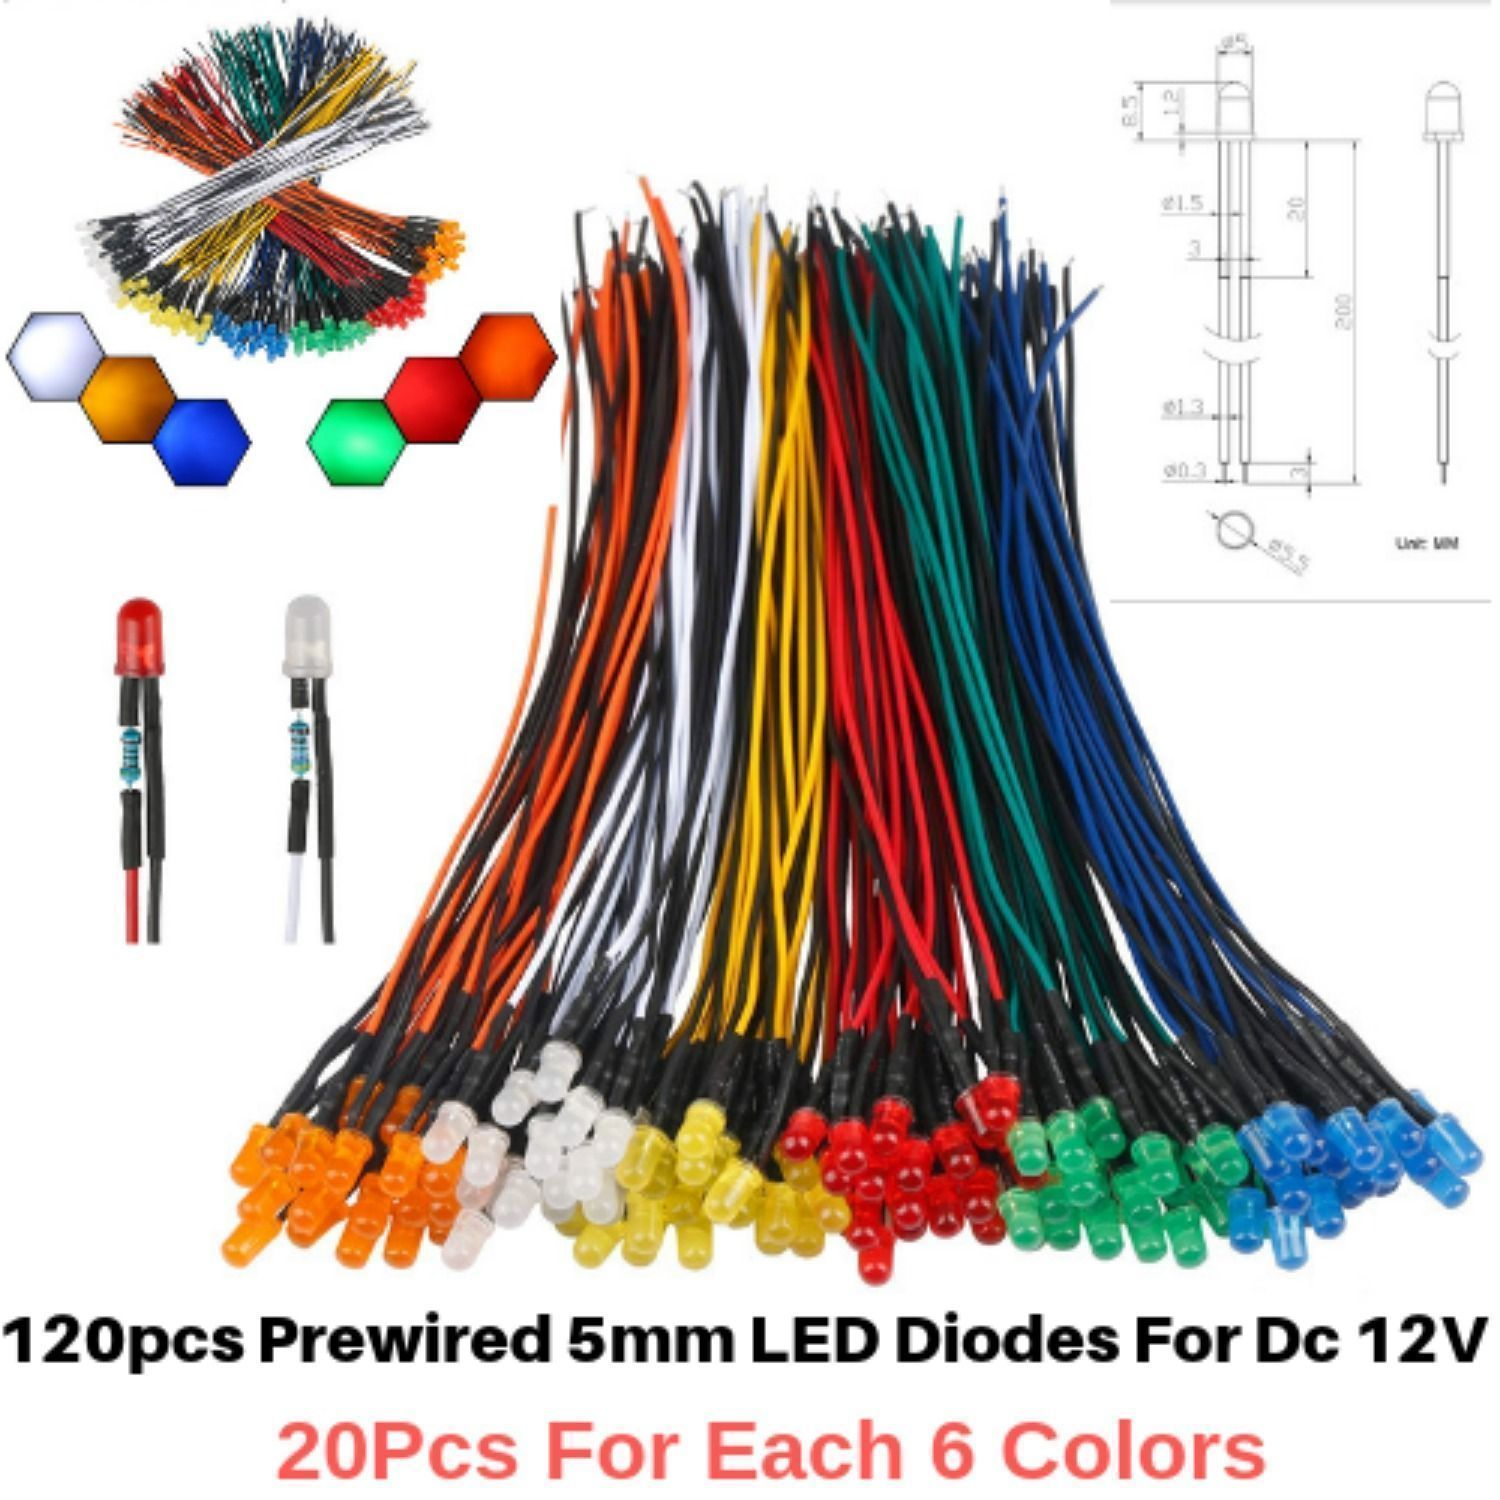 7colors 700pcs 0603 SMD LED Diode White Red Yellow Green Blue Orange Mix Kits